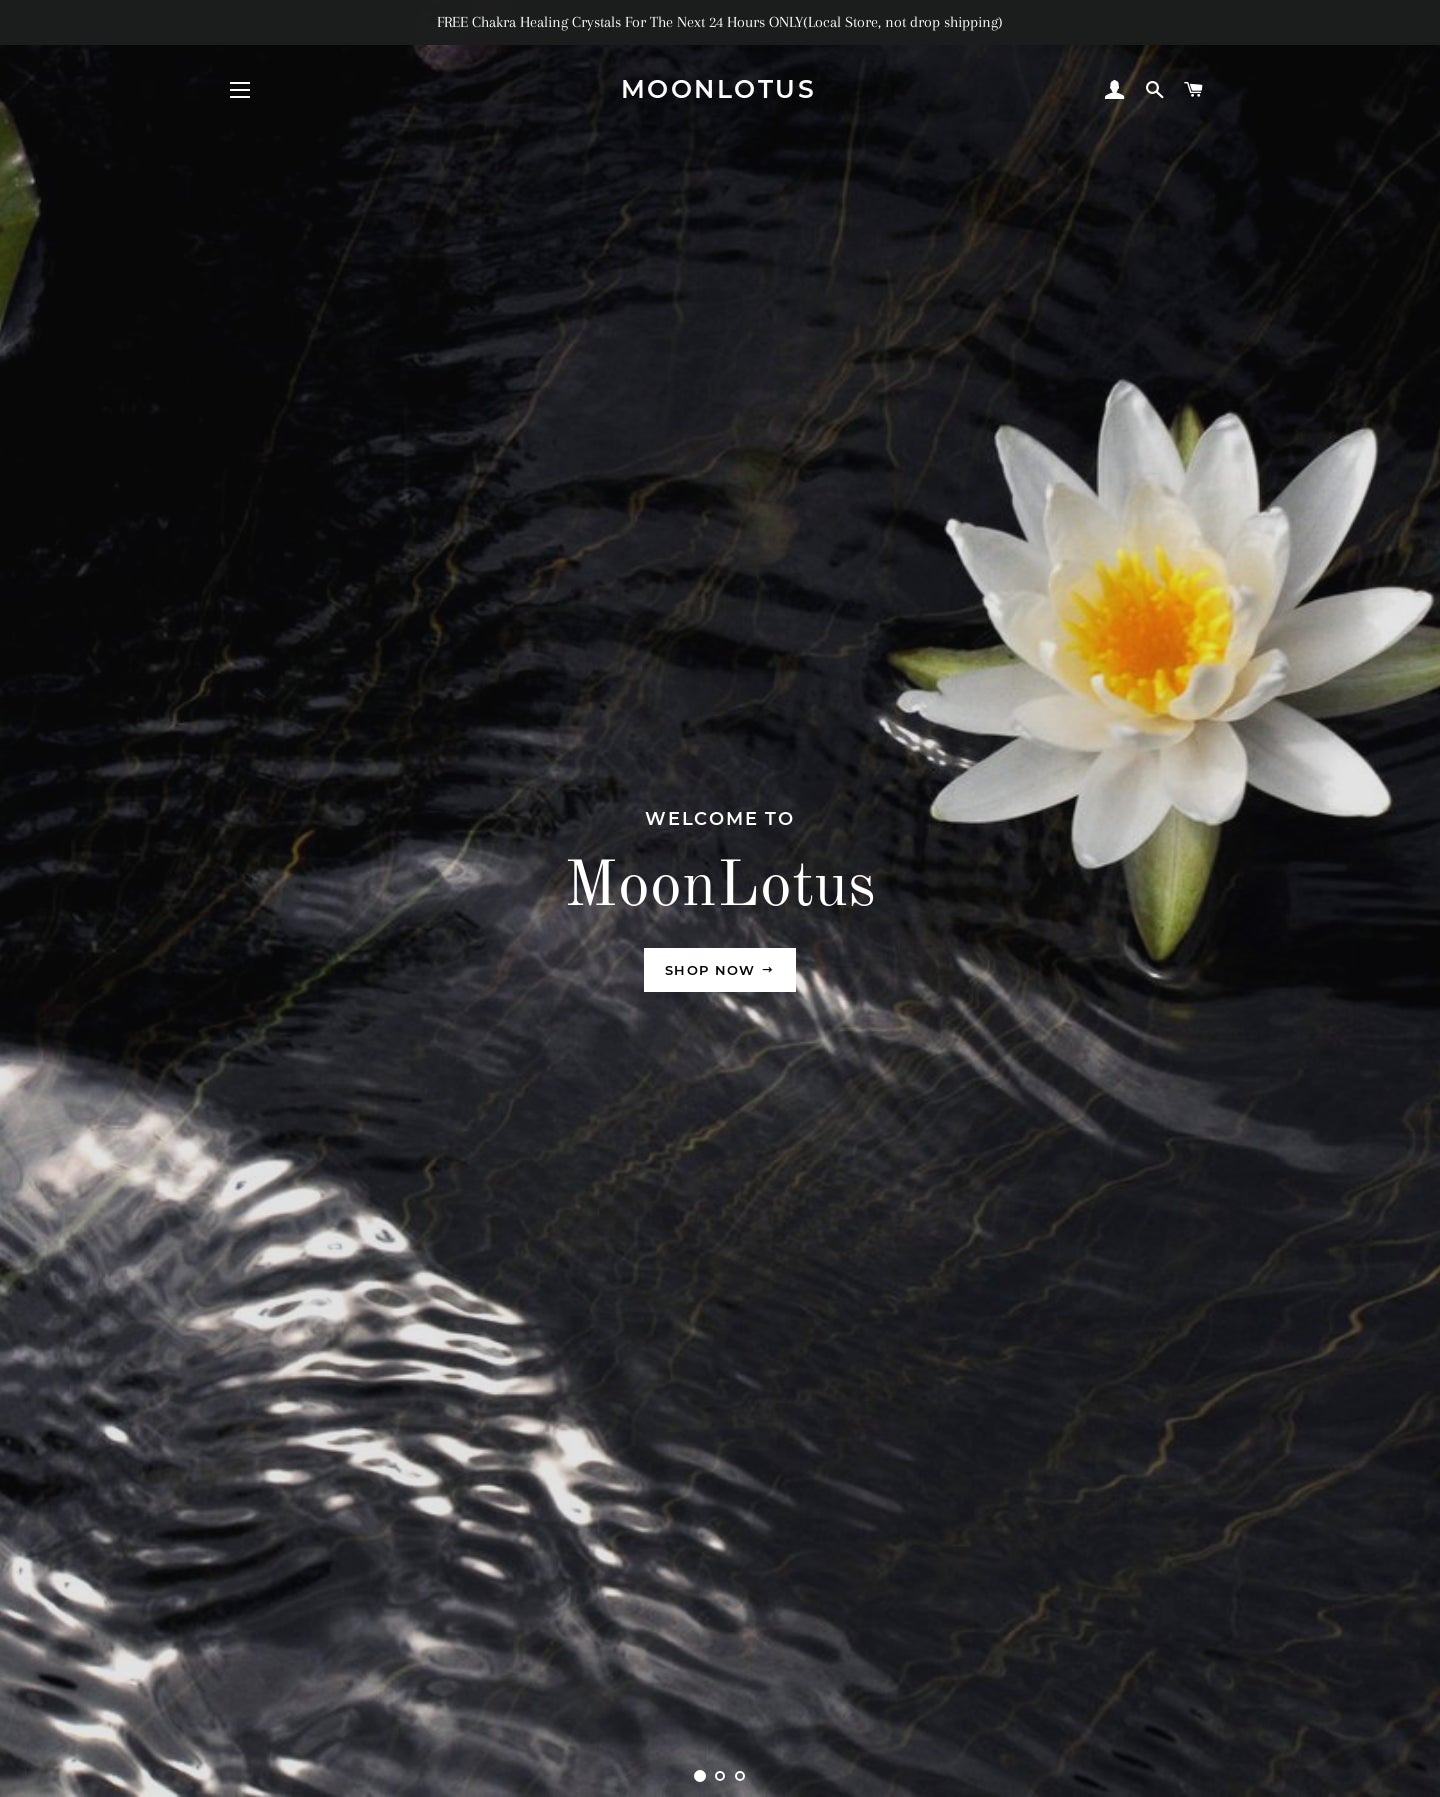 MoonLotus Screenshot - 1